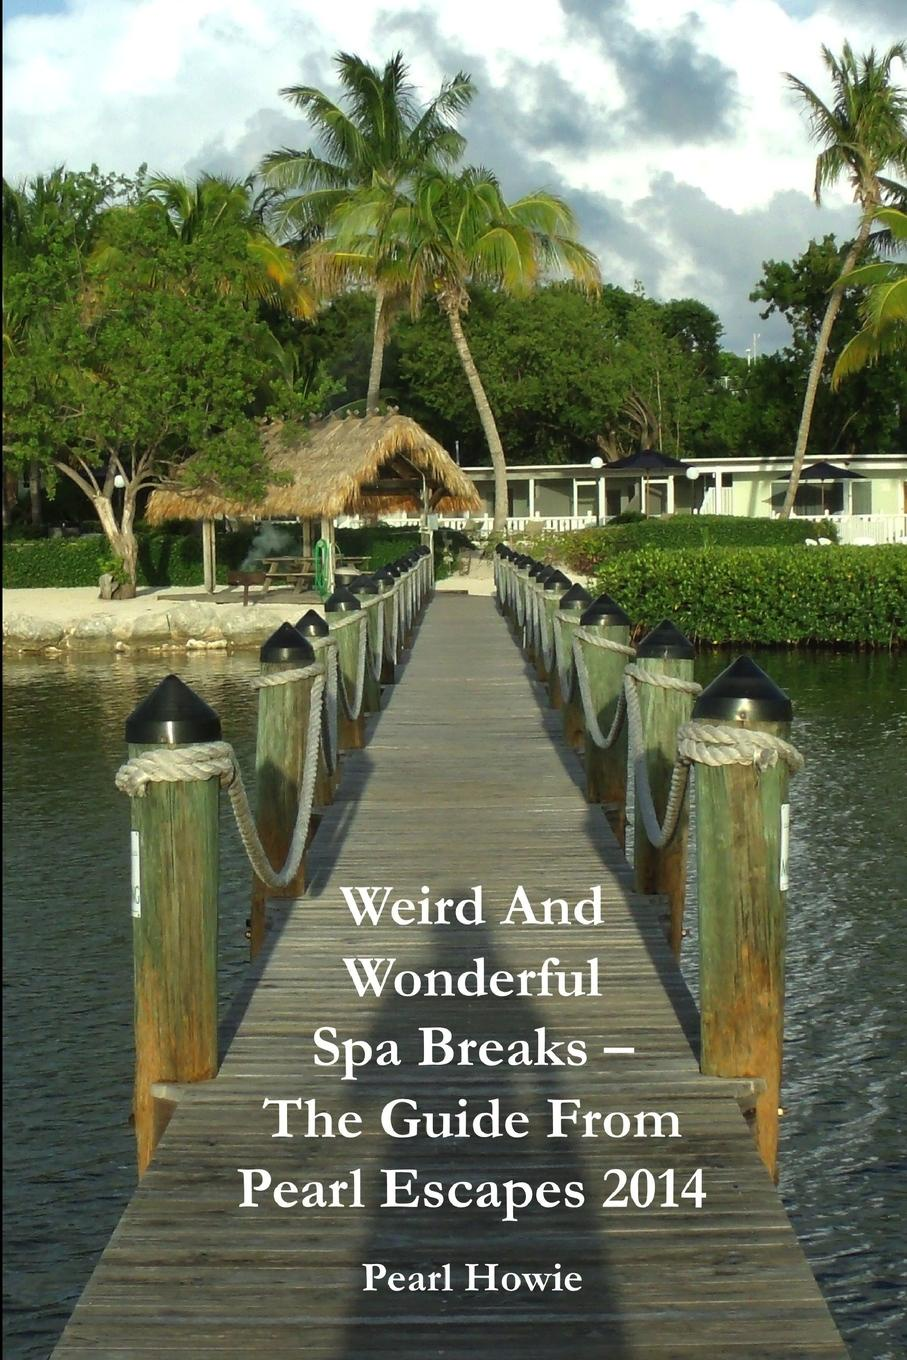 Pearl Howie Weird And Wonderful Spa Breaks - The Guide From Pearl Escapes 2014